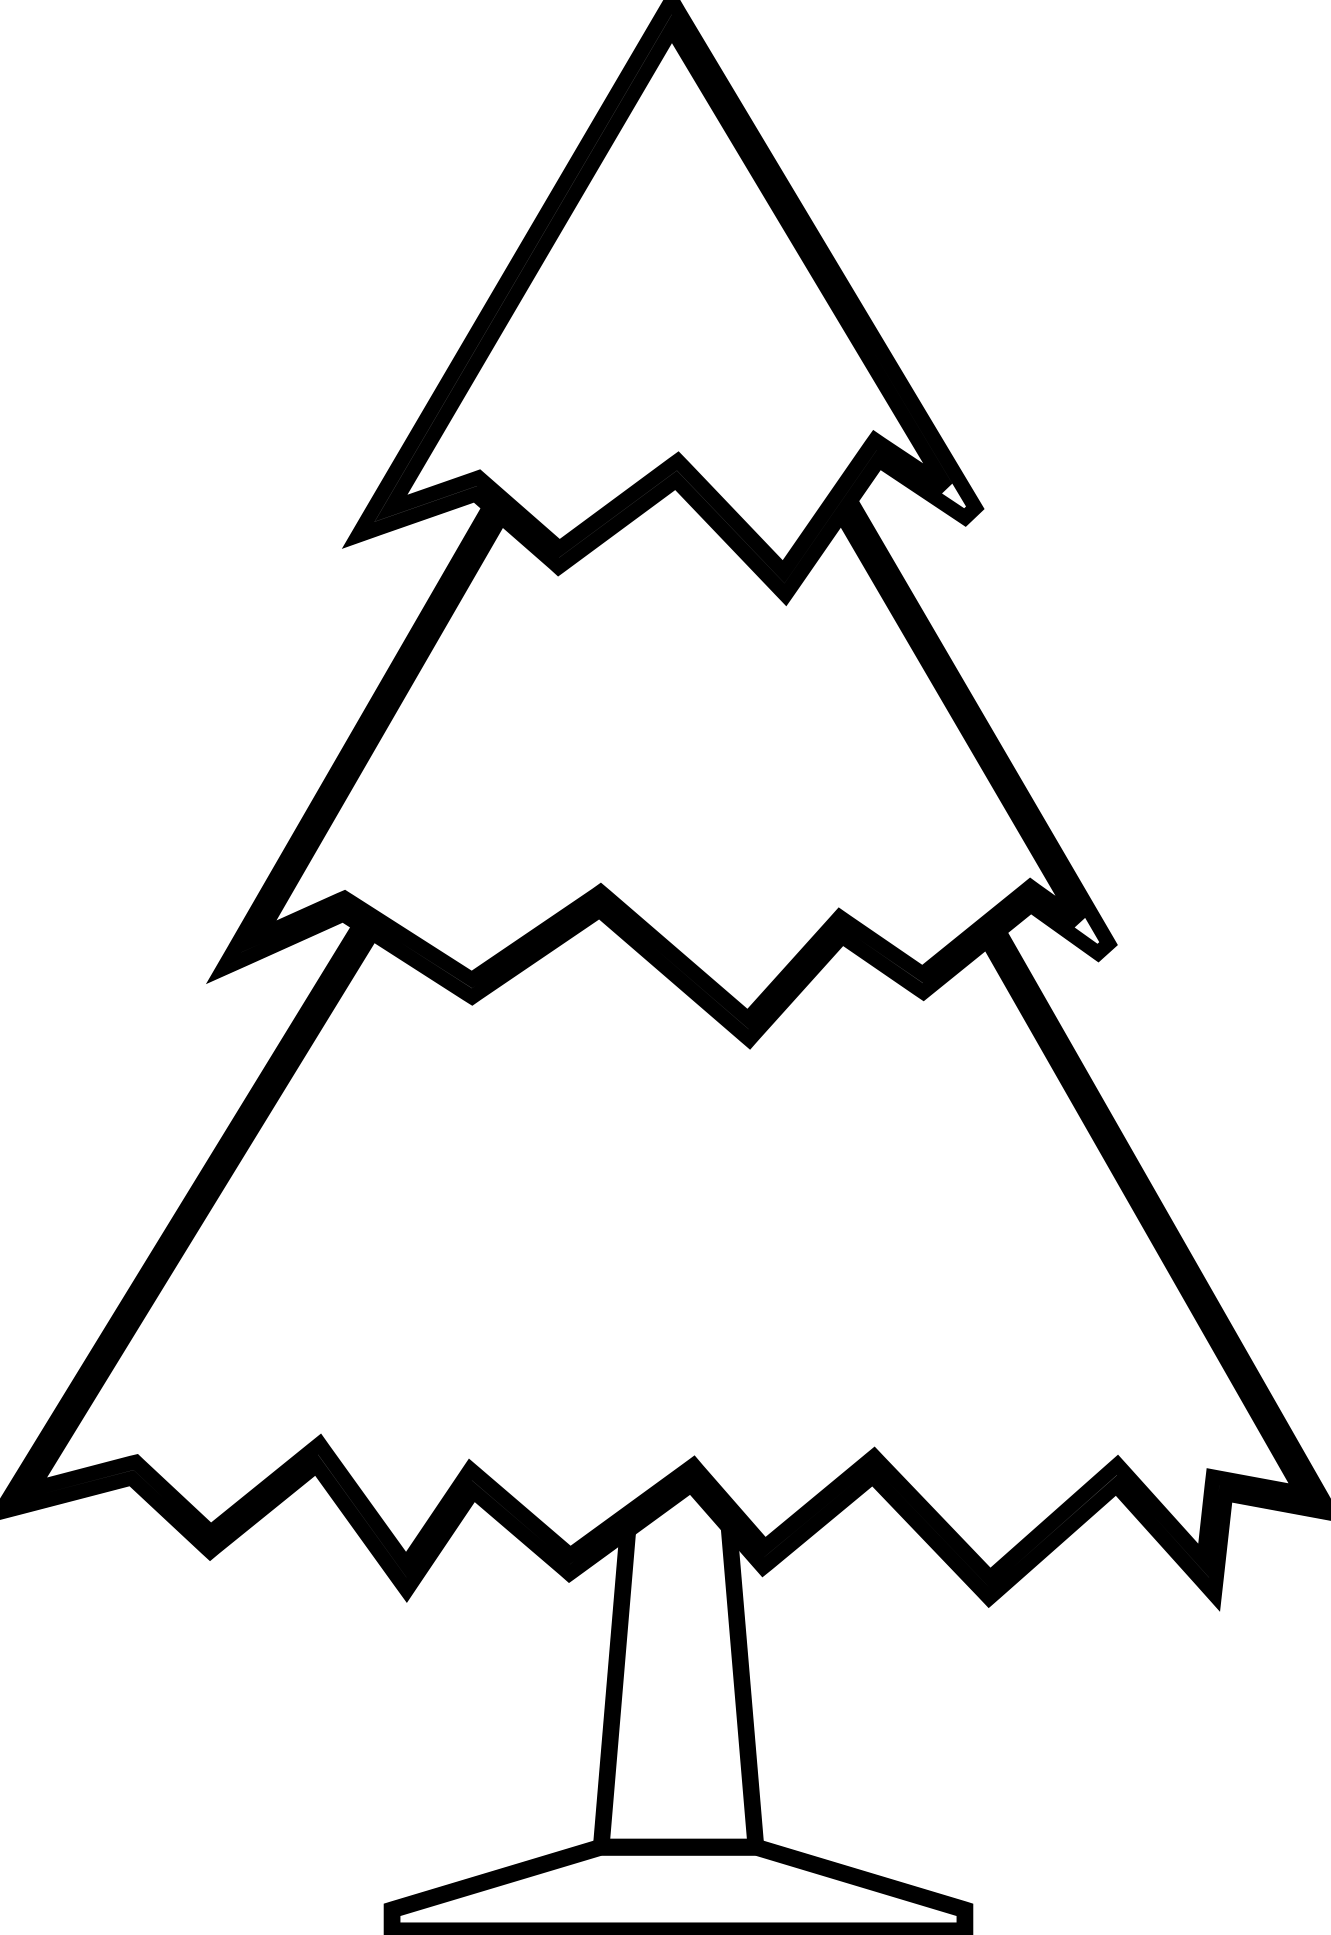 Tree Clipart Black And White .-Tree Clipart Black And White .-14